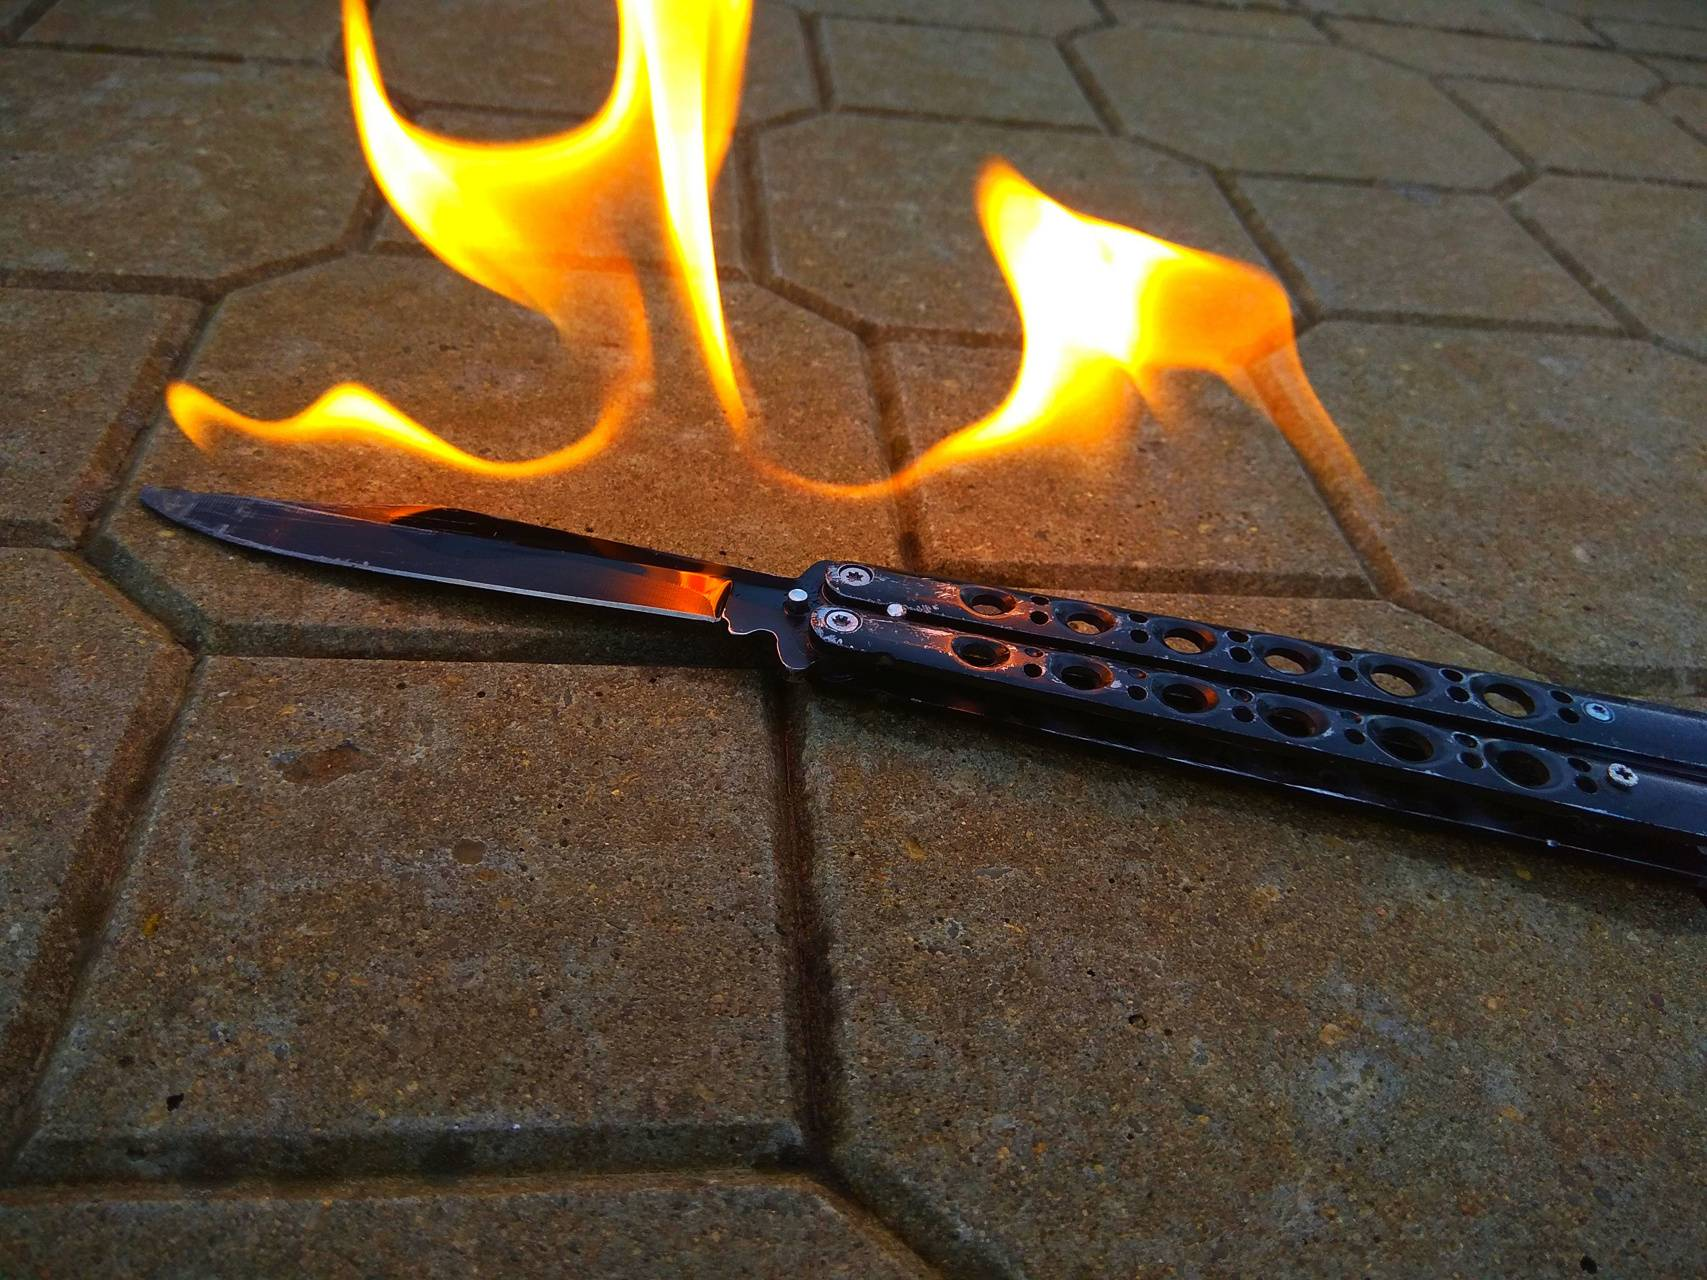 Knife in flames